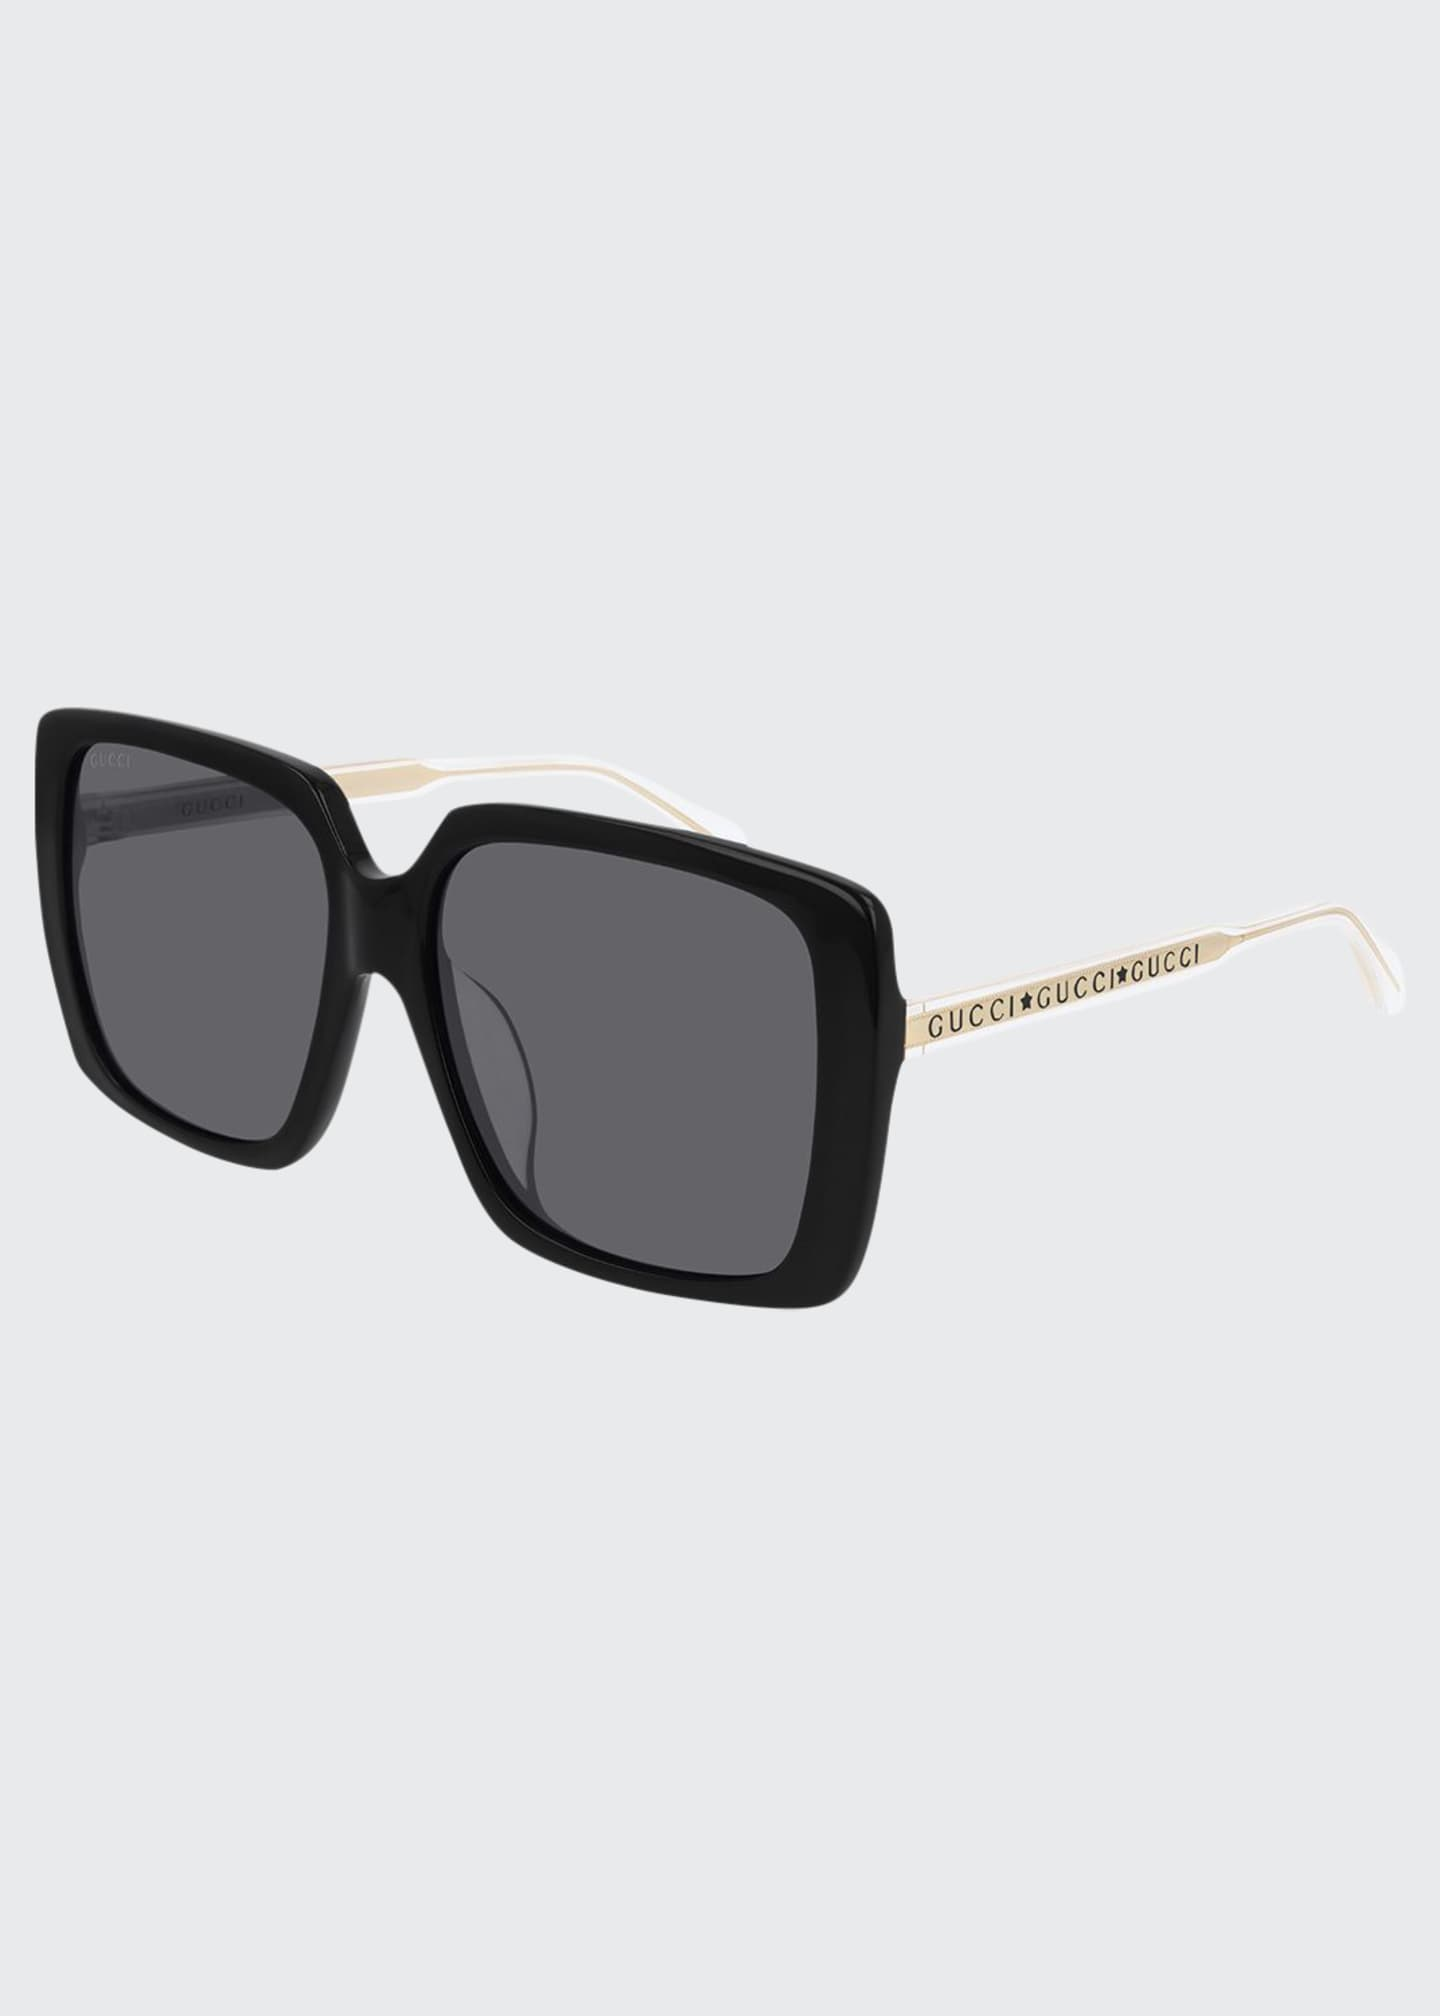 Colorblock Acetate Oversized Square Sunglasses